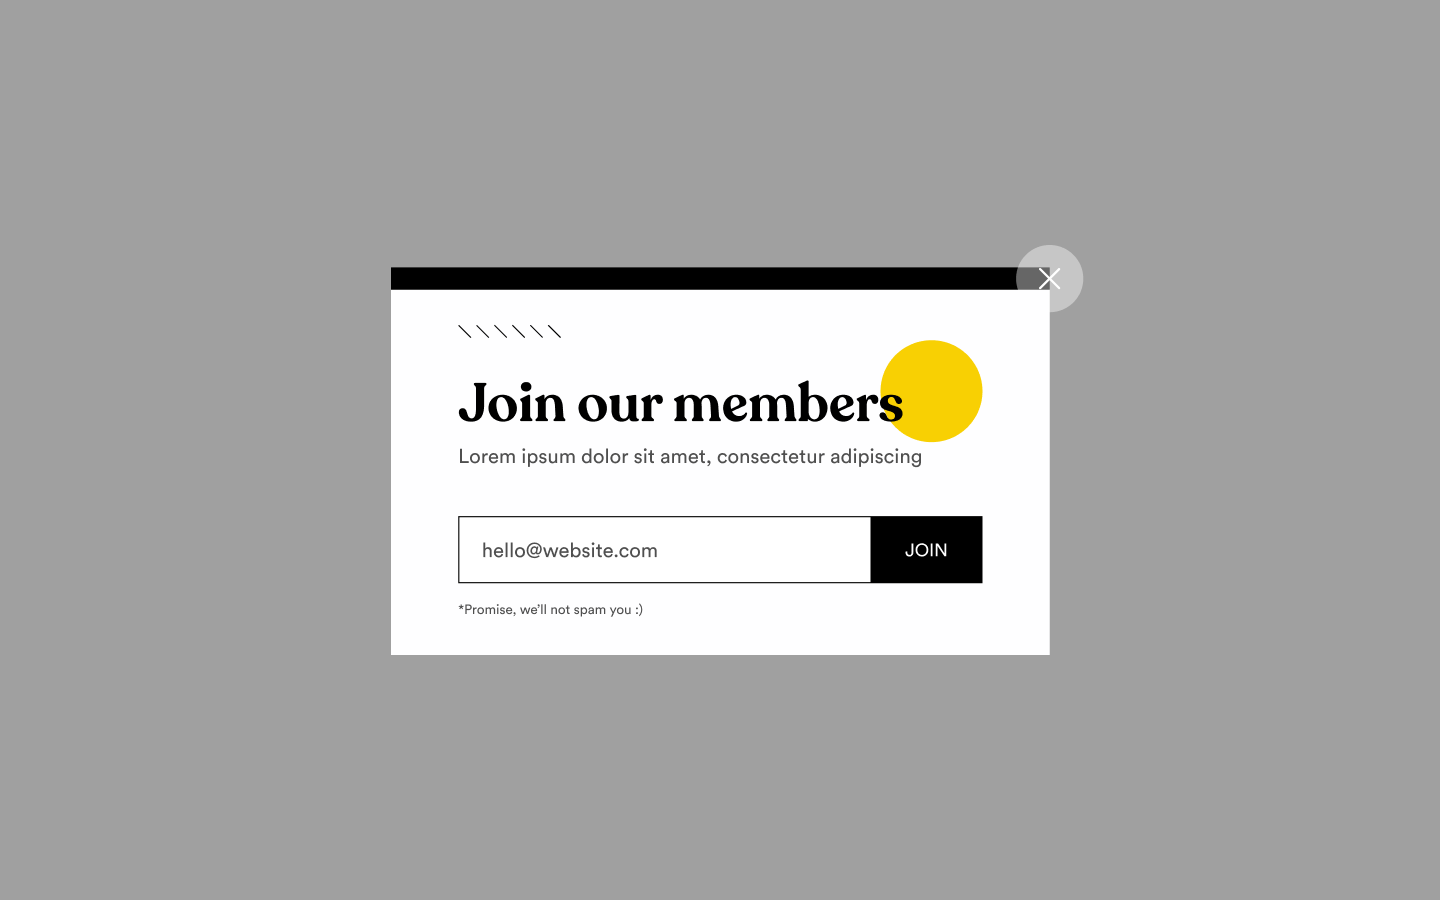 Popup / modal element that can be used to collect on-page information such as subscriptions, accounts, information.